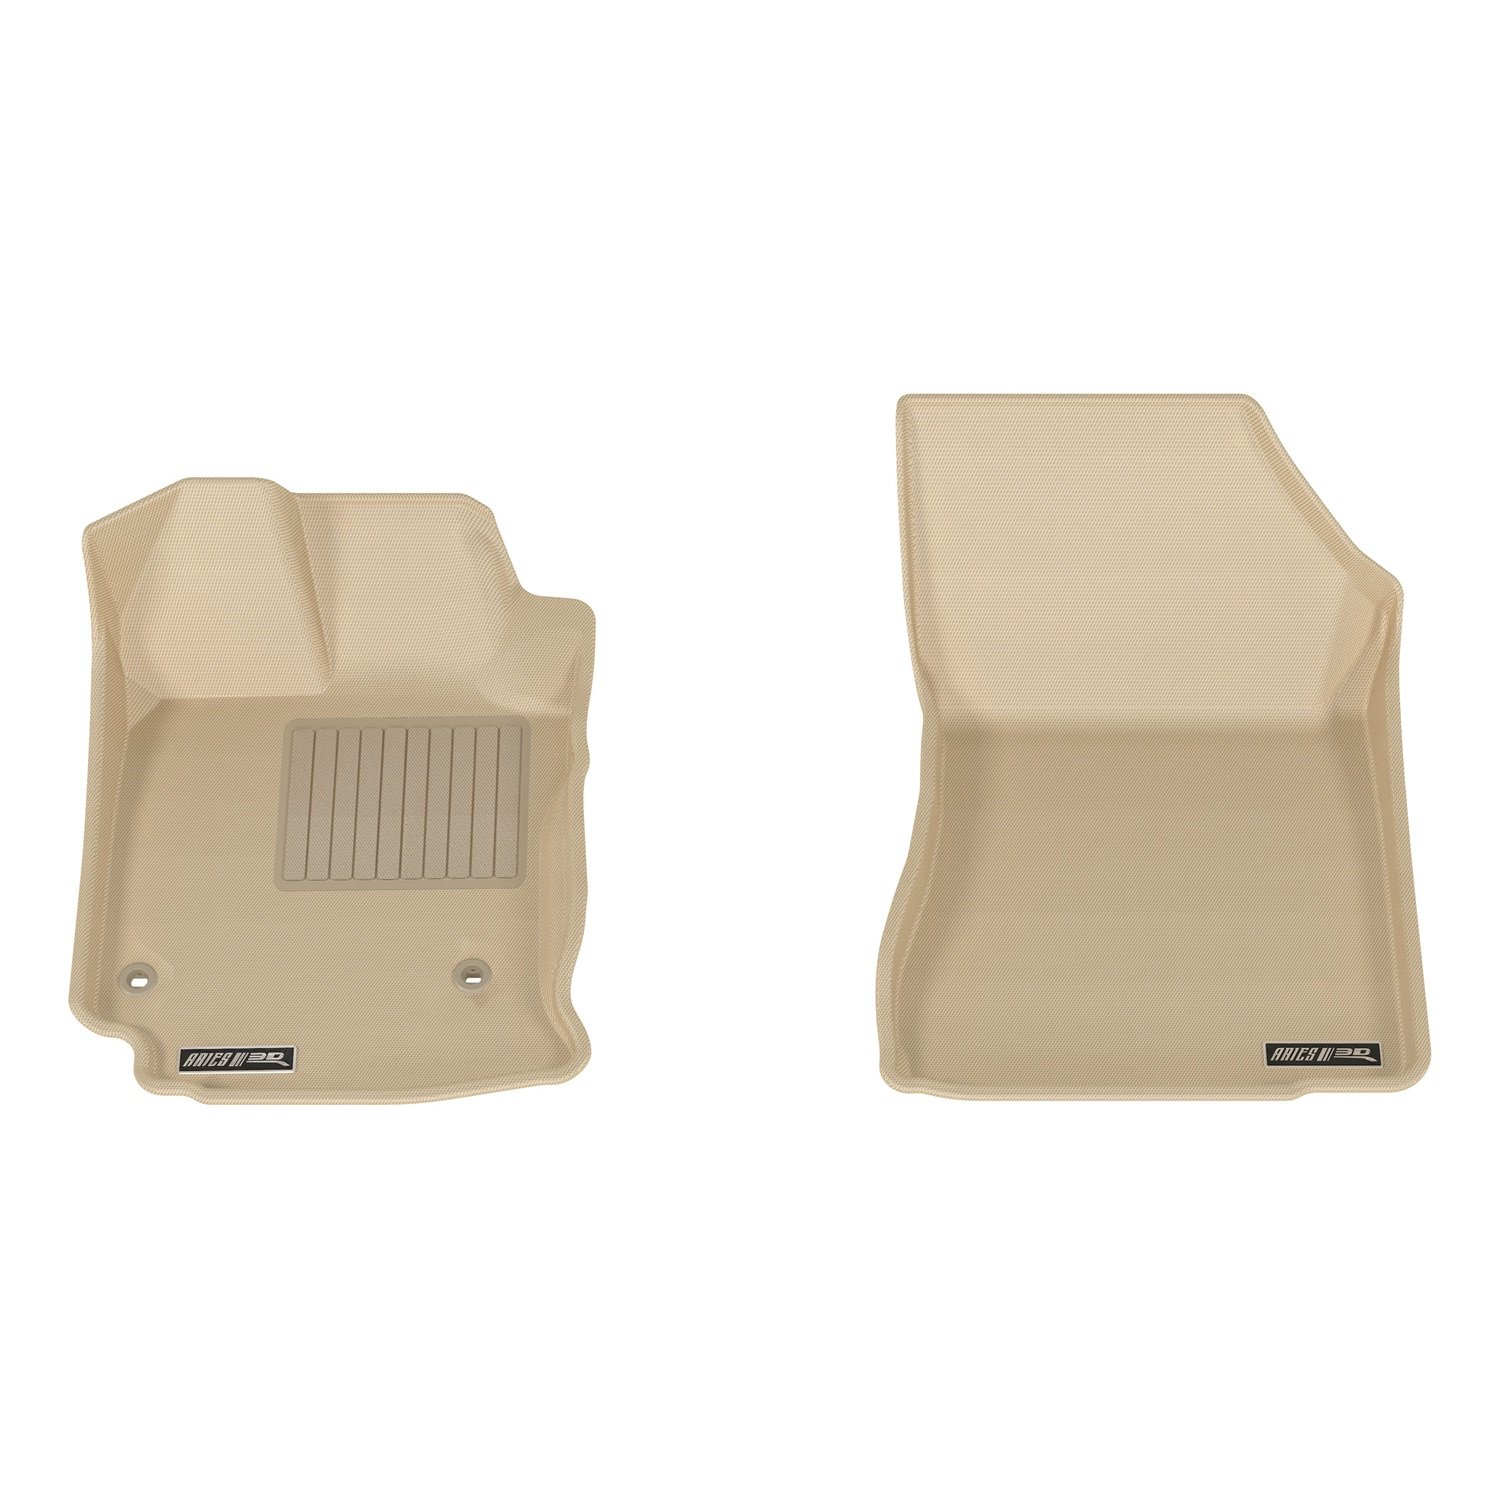 Aries TY13411502 Tan Front 3D Floor Liner 2 Piece